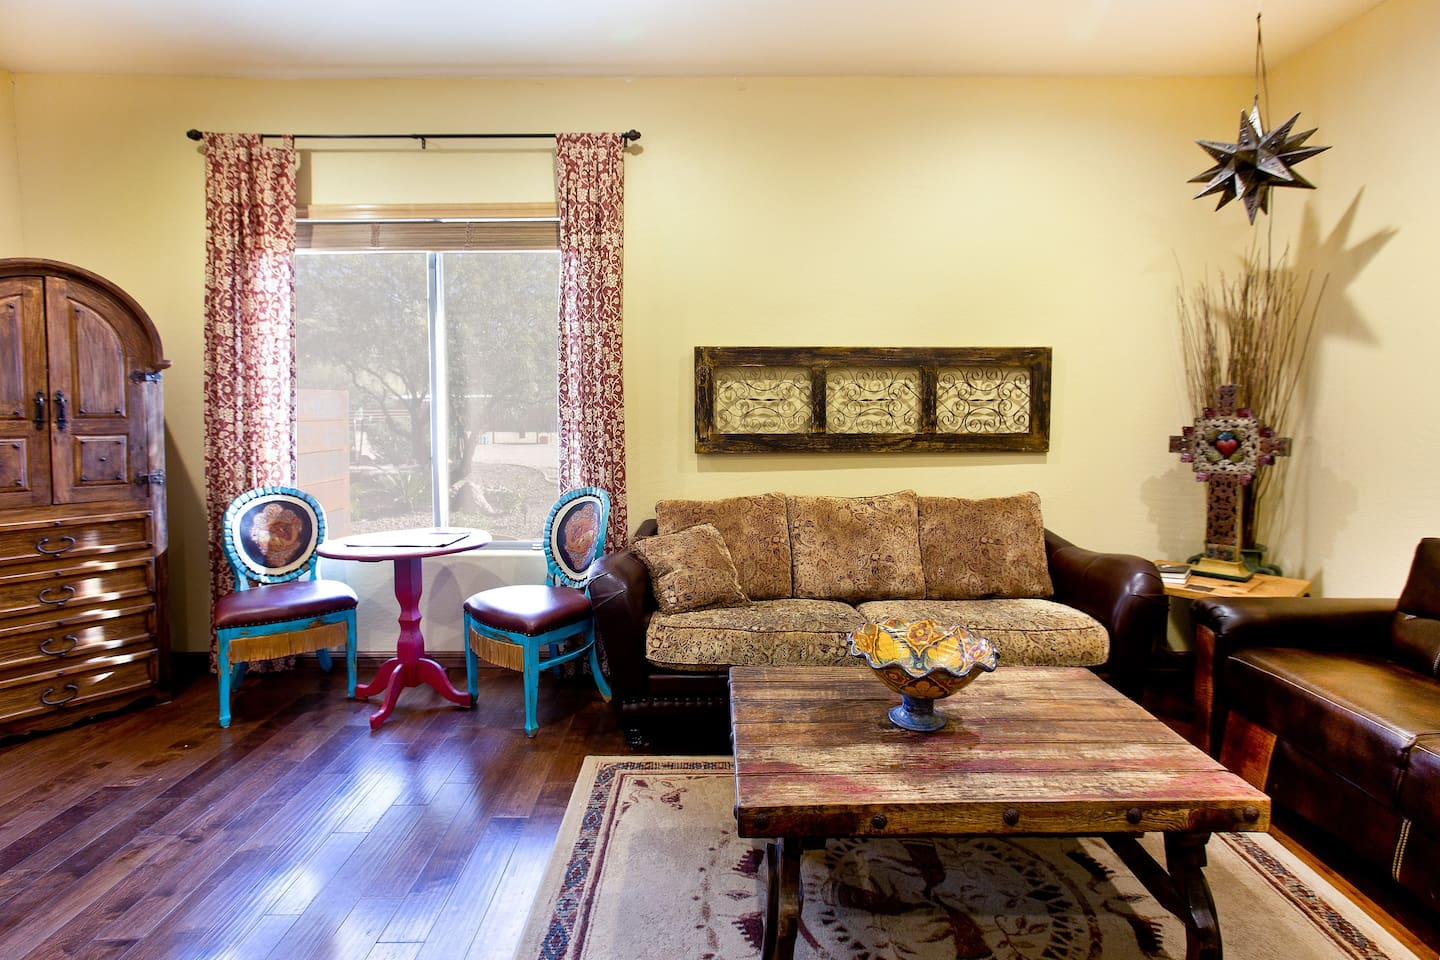 Beautifully appointed, spacious and comfortable home away from home!